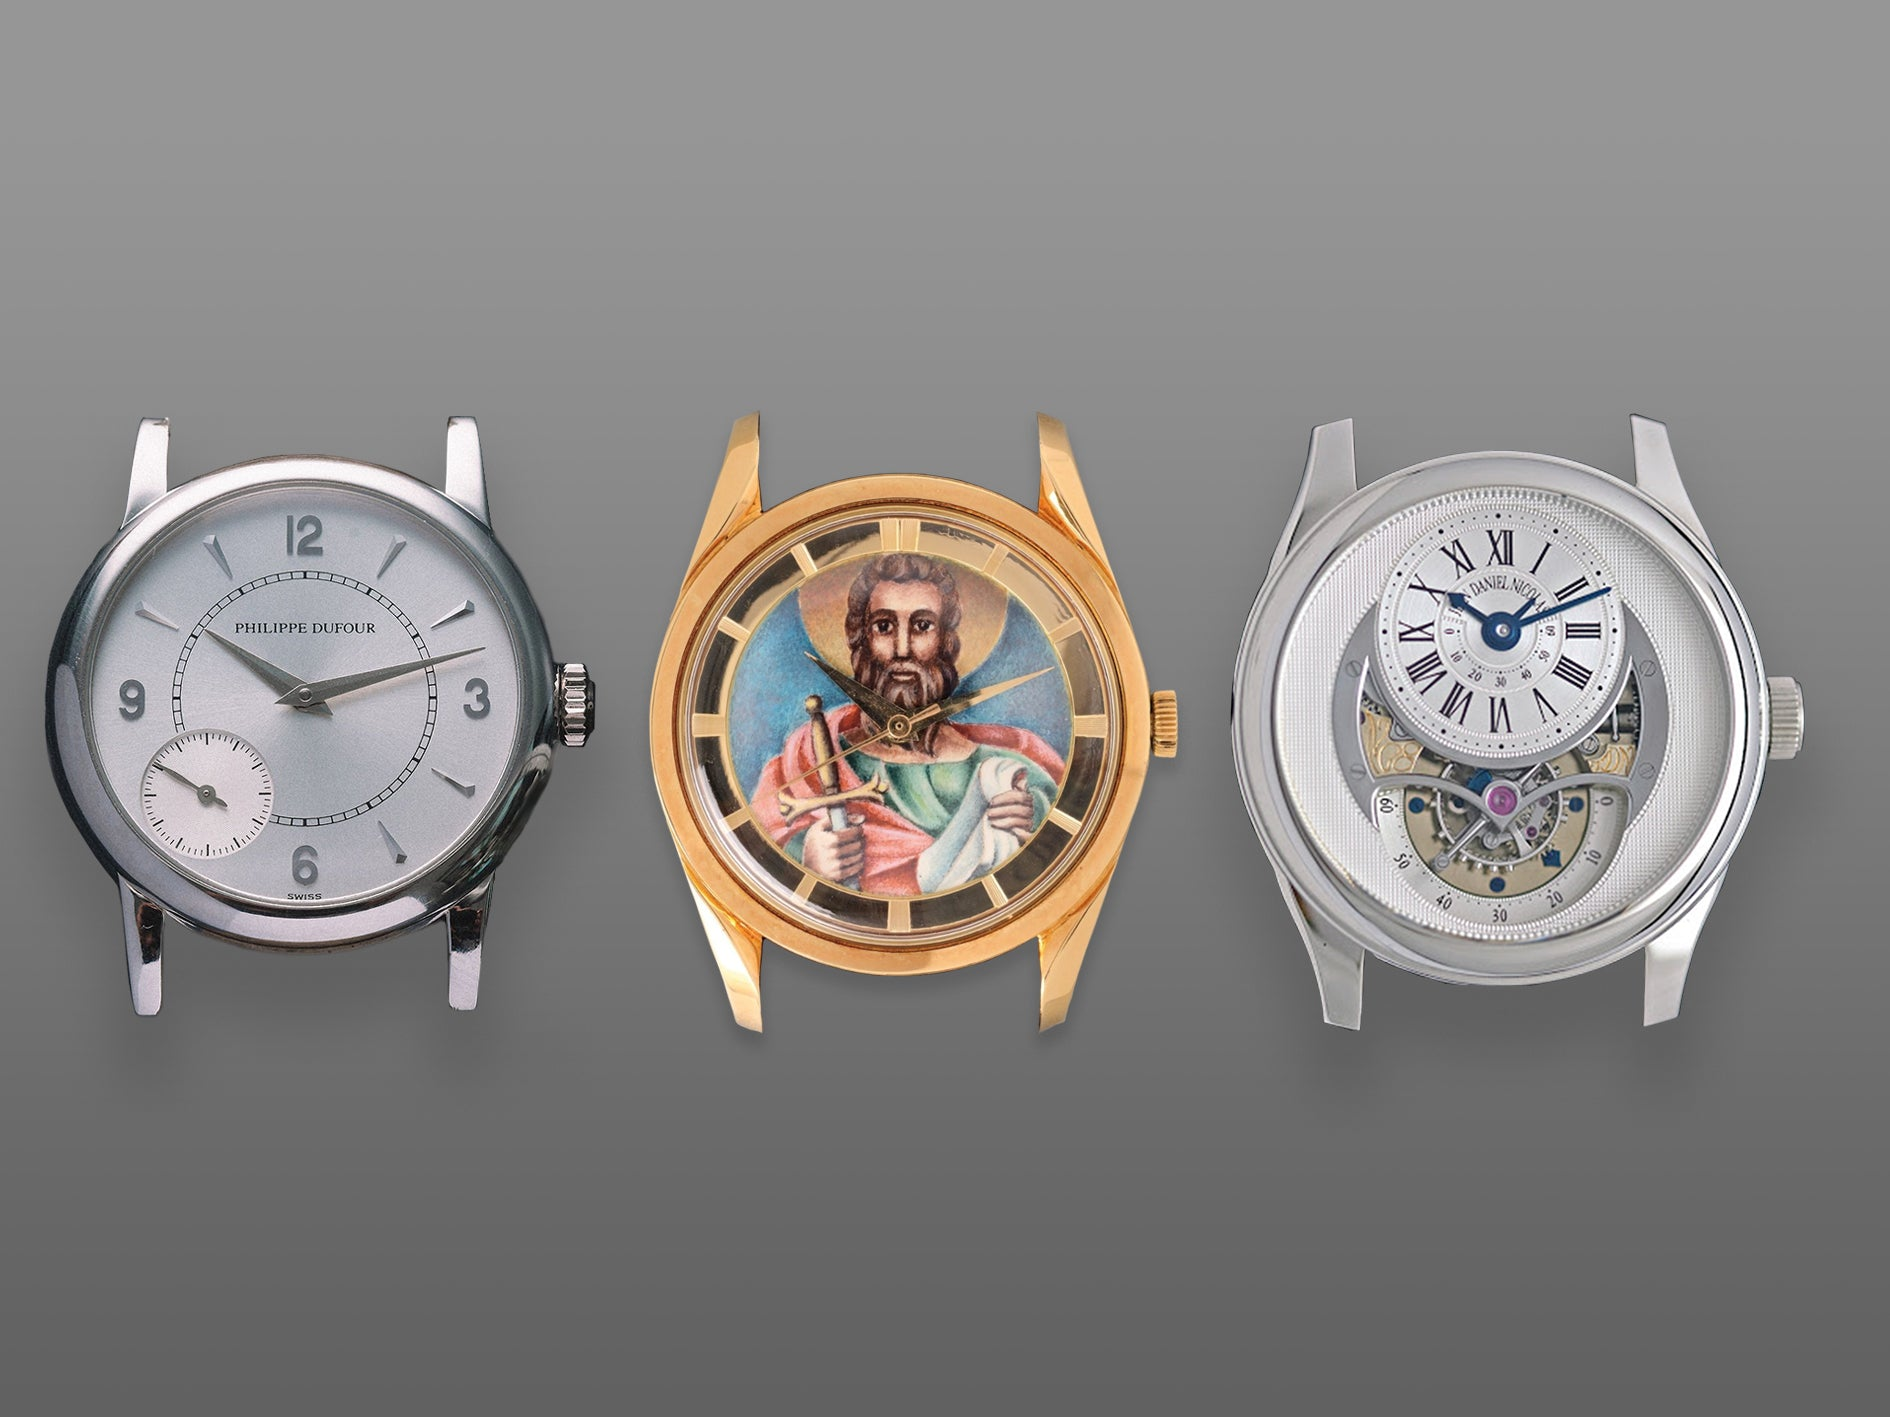 Philippe Dufour Duality Universal Geneve Polerouter and Jean Daniel Nicolas two minute tourbillon